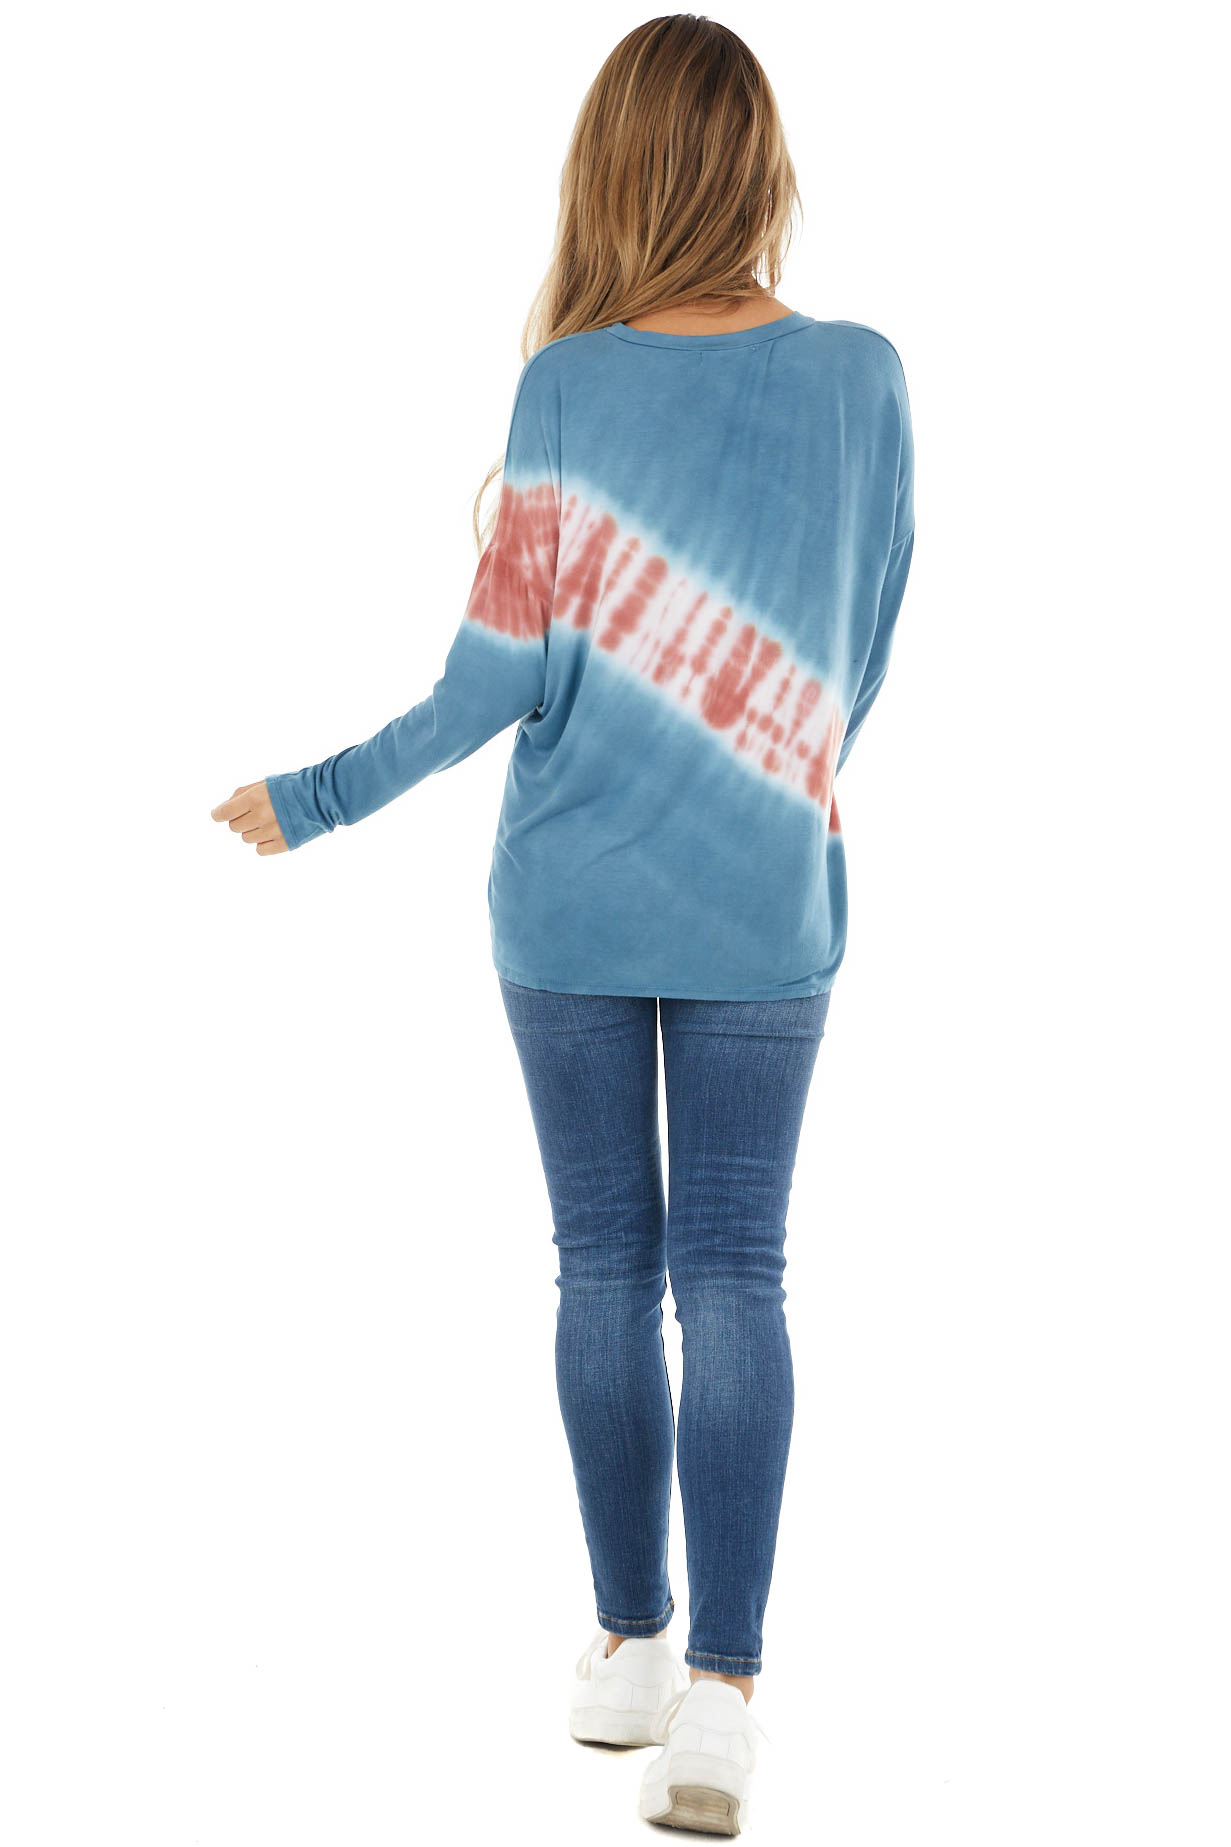 Teal and Coral Tie Dye Print Long Sleeve Knit Top